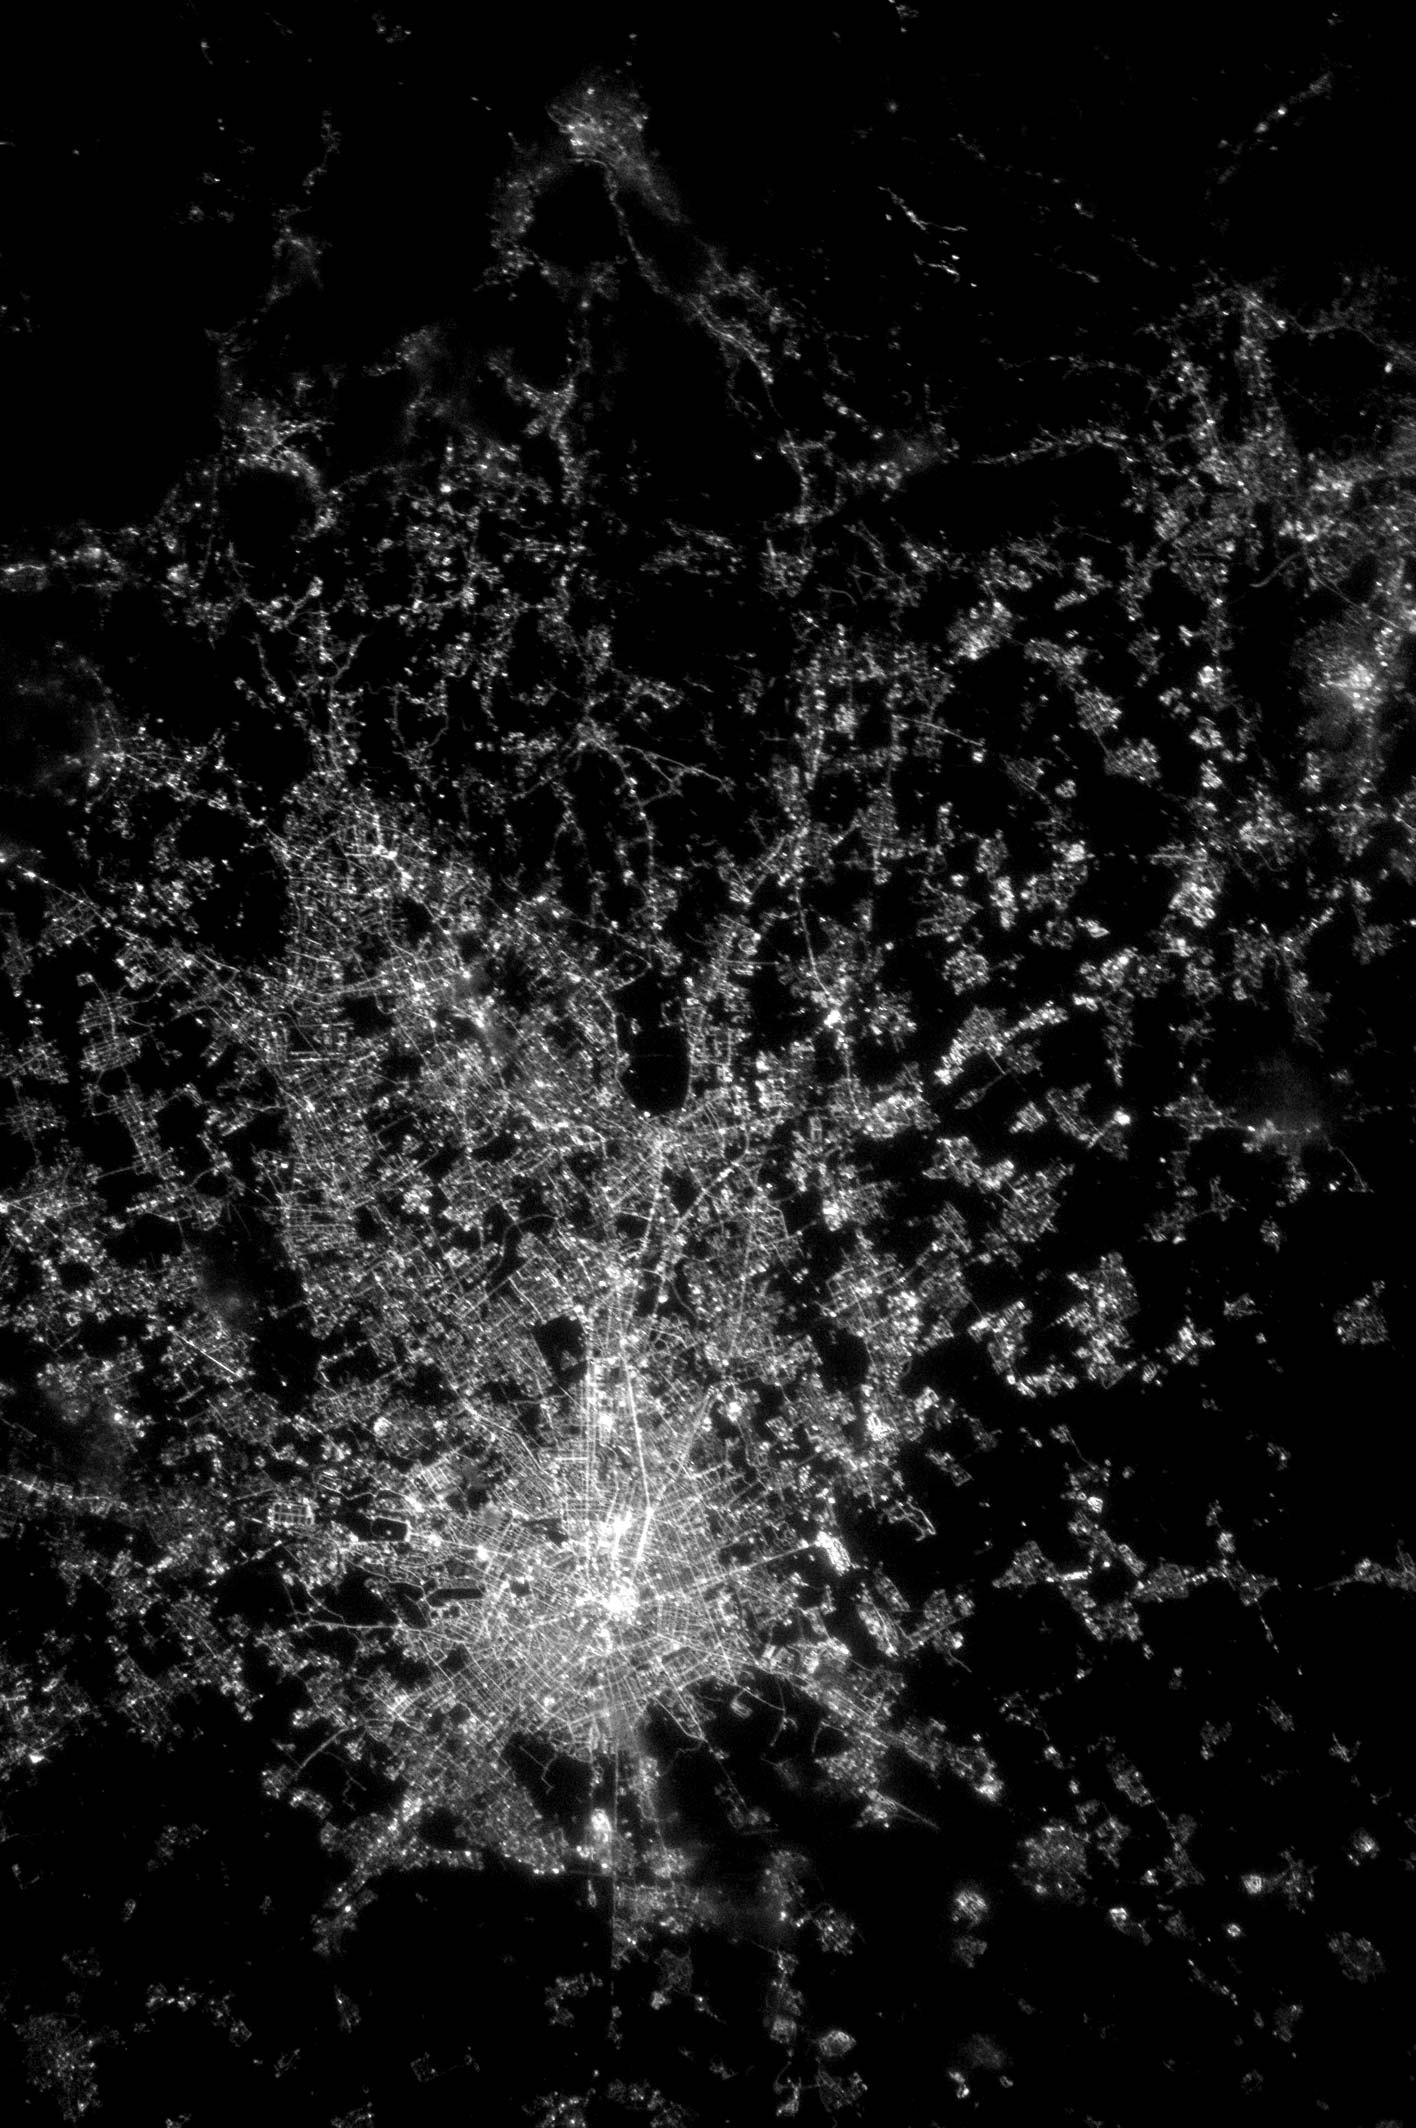 Night image of Milan, Italy (size ~31 km) taken from the International Space Station at an altitude of 400 km.